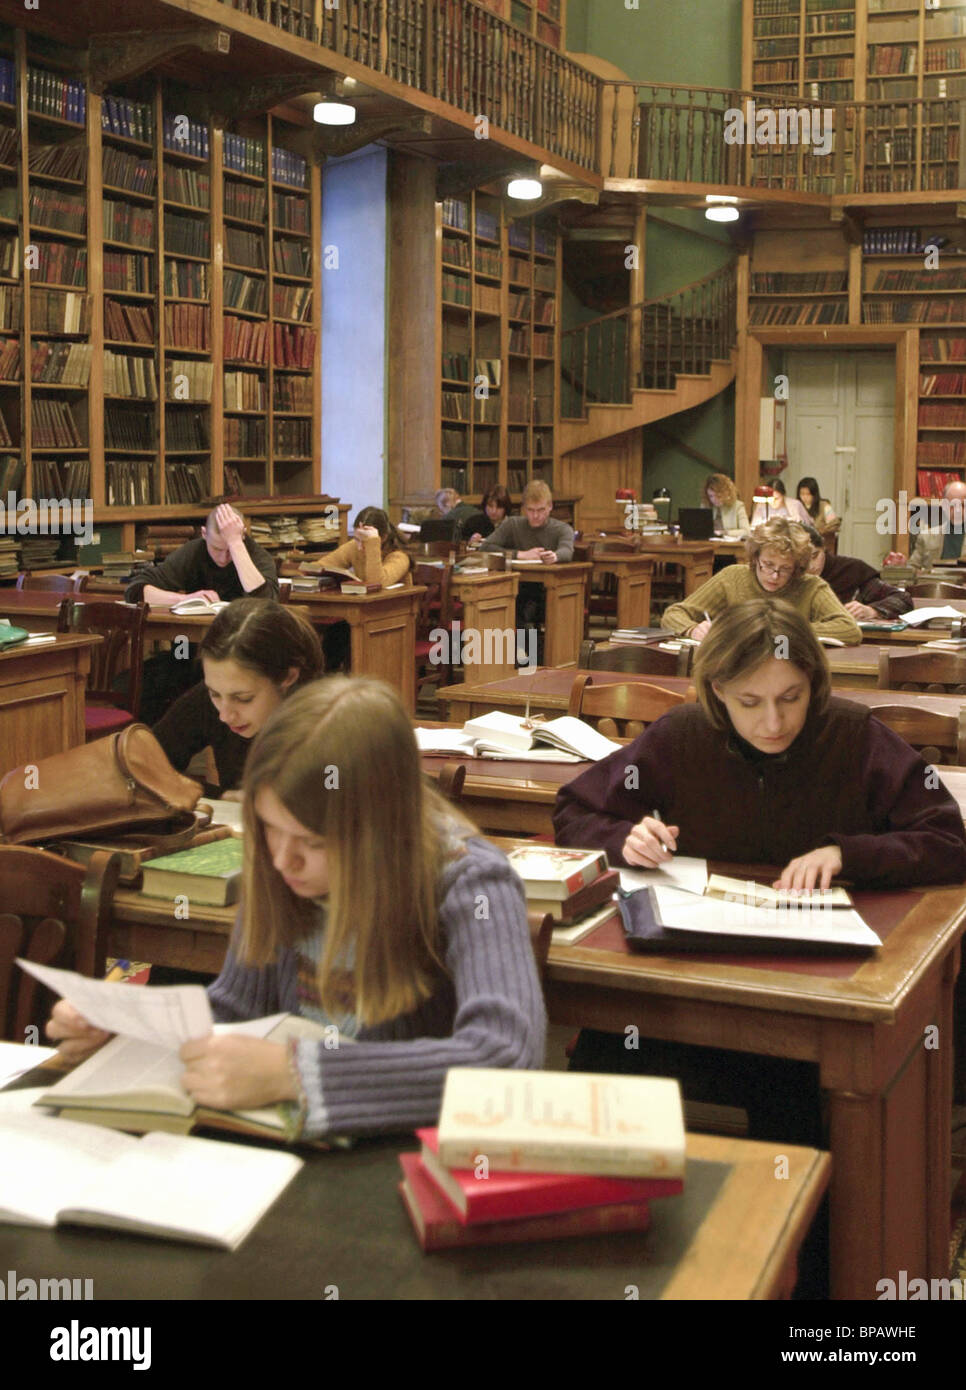 Russian National Library celebrates its 190th jubillee - Stock Image